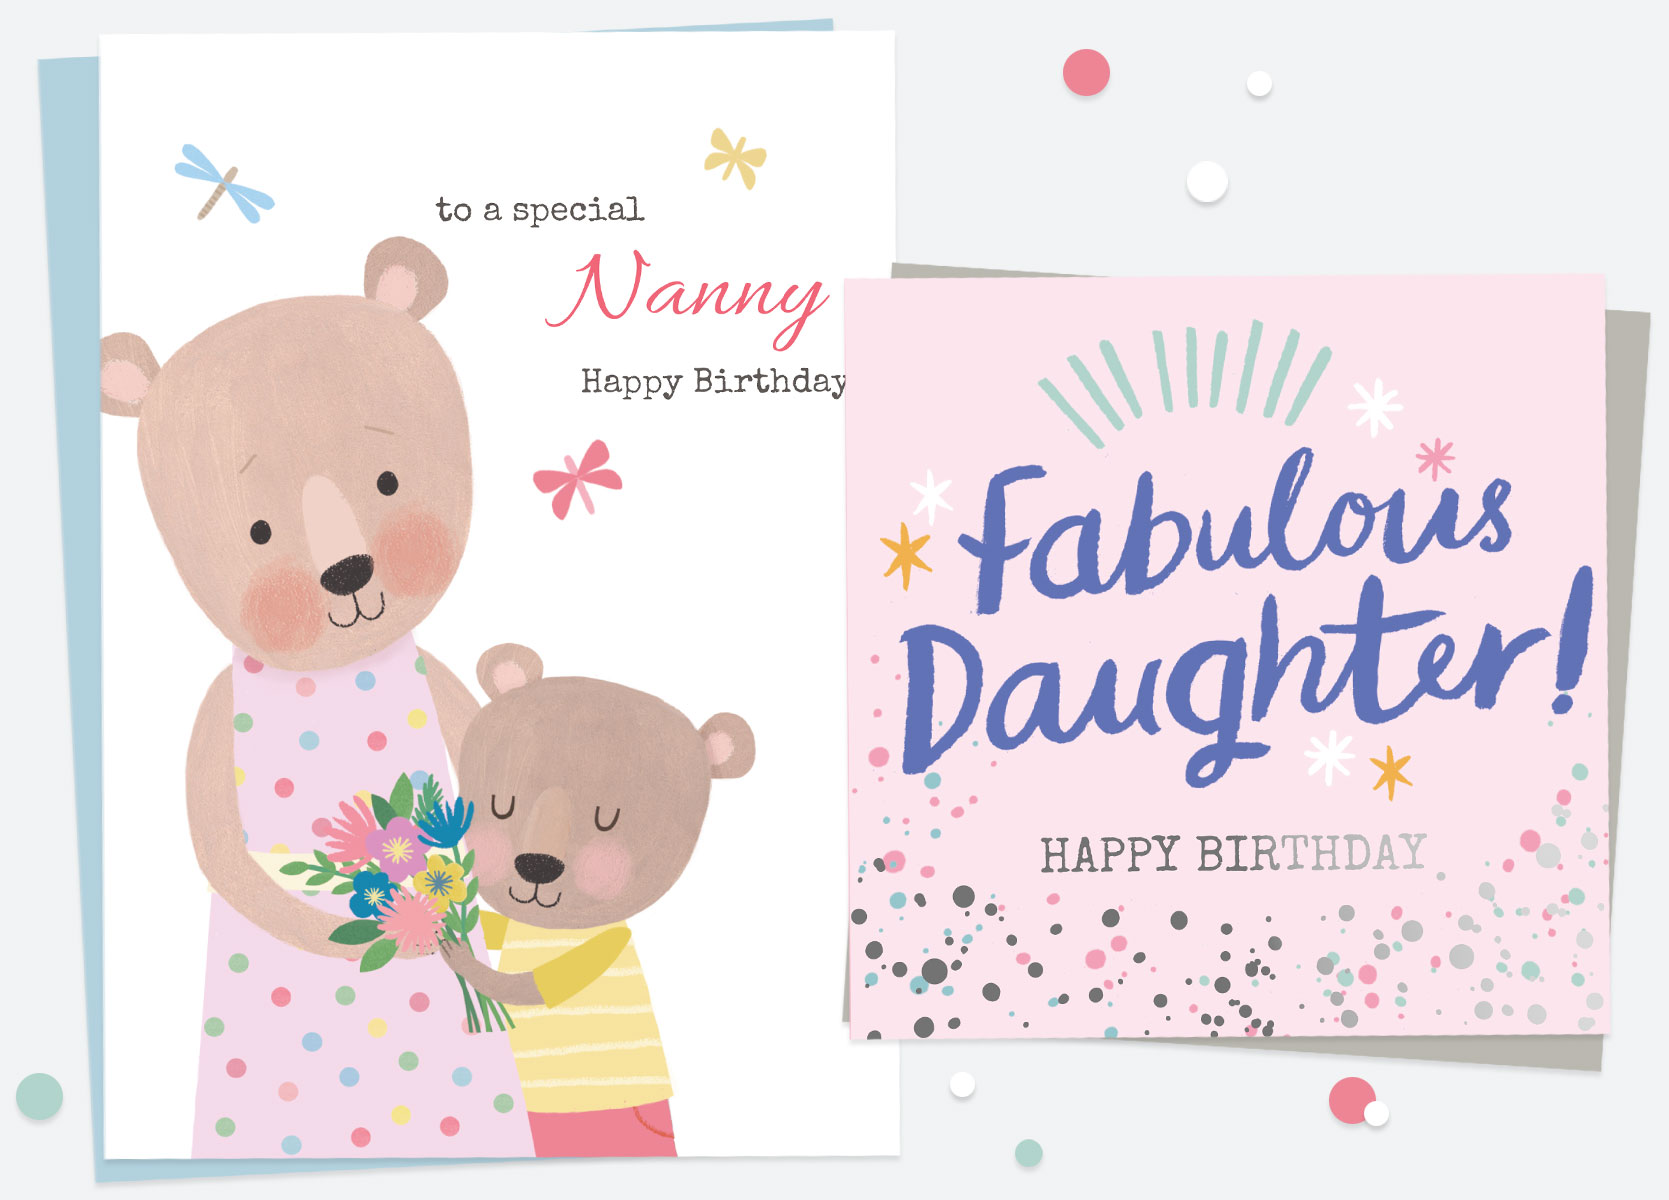 Birthday Cards For Her - Relative